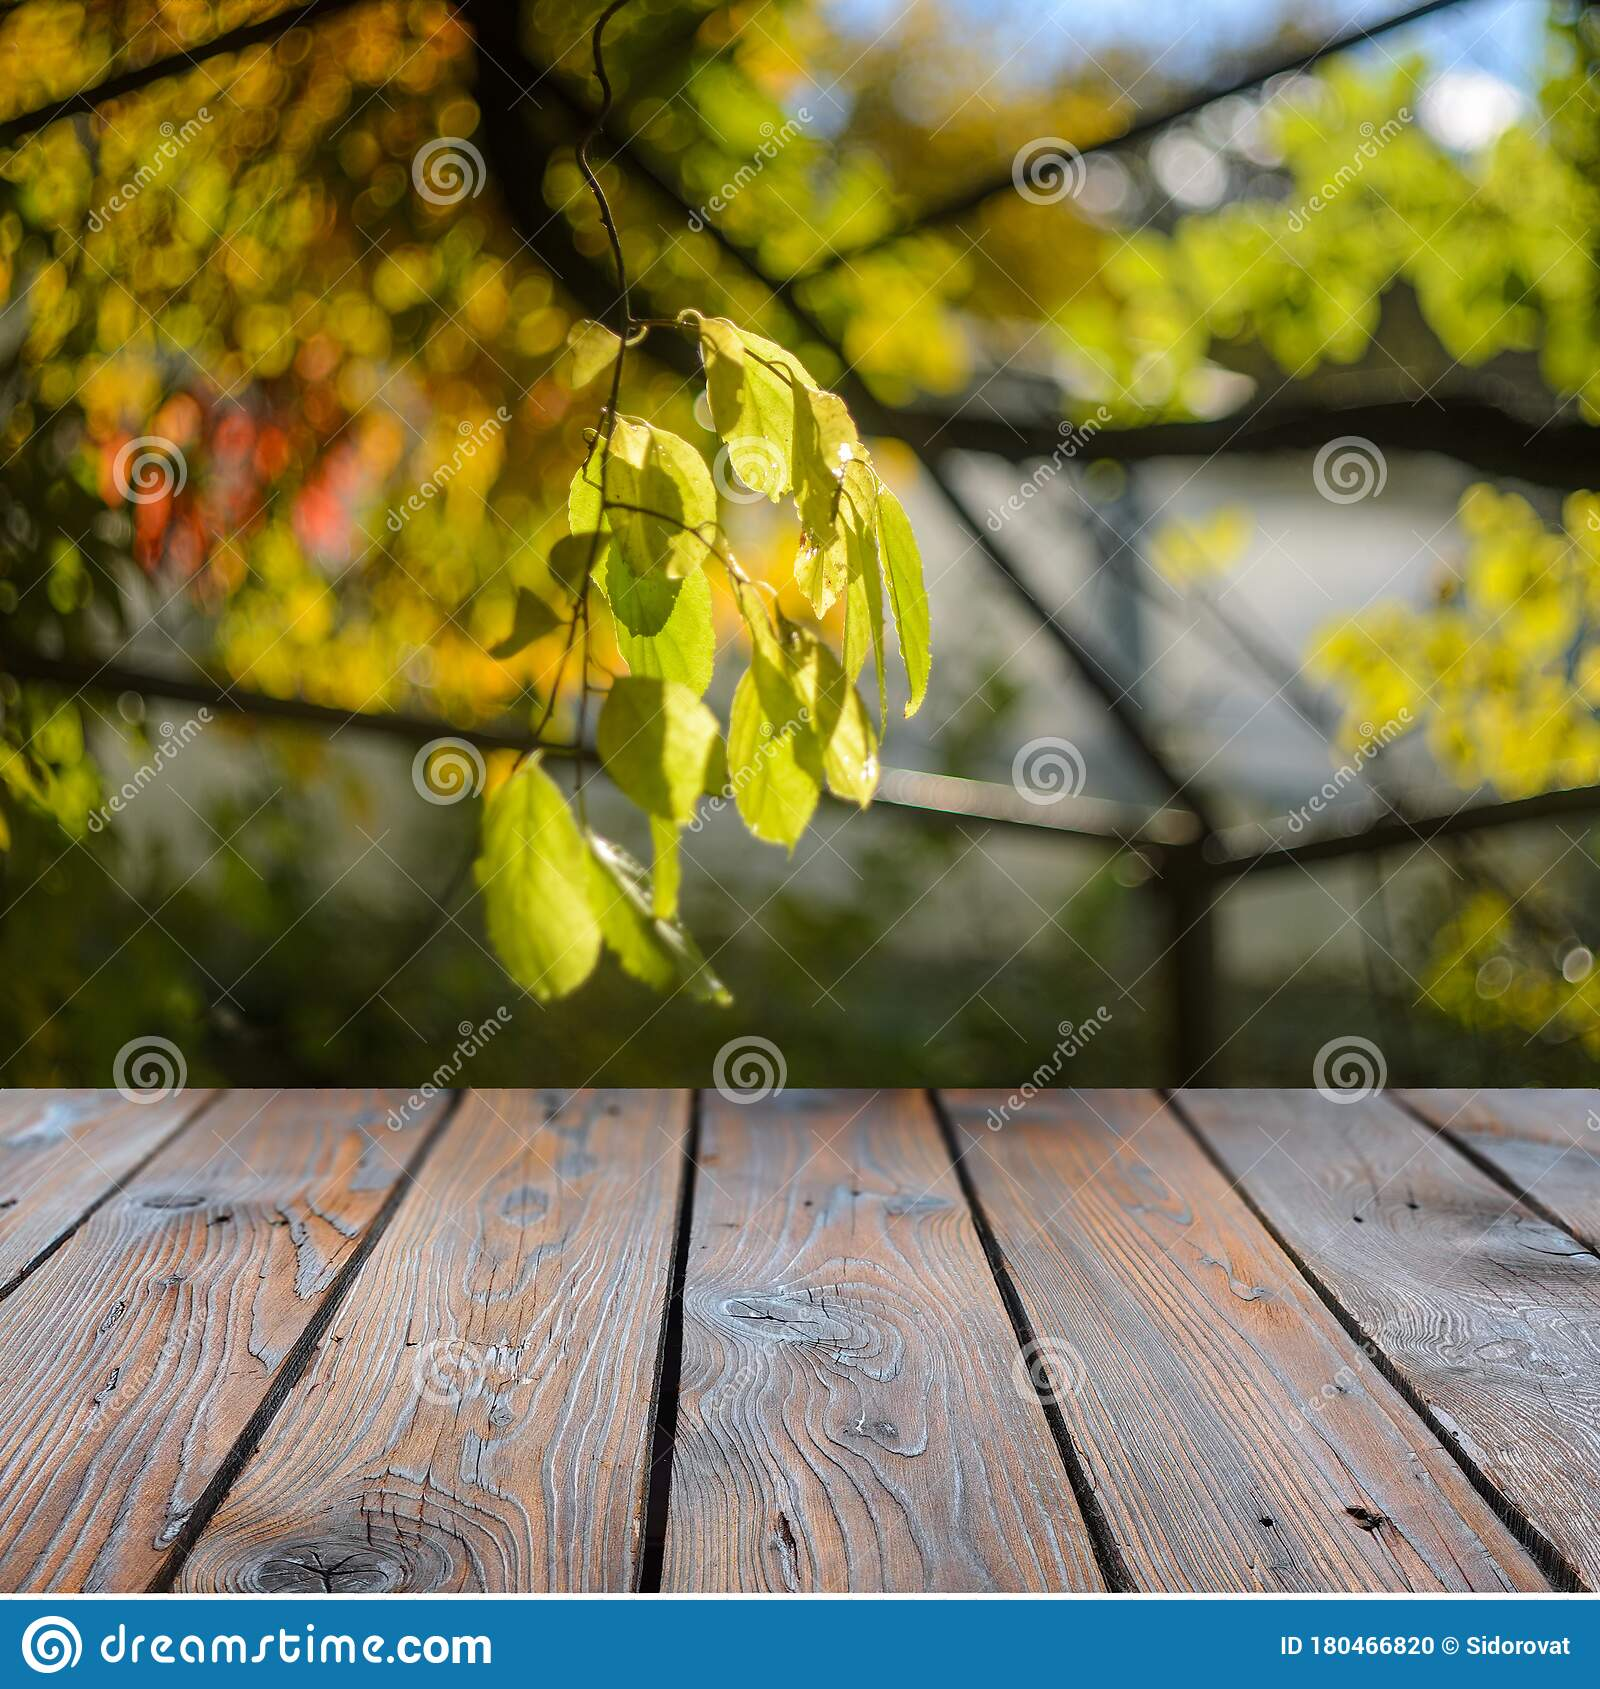 Empty Dark Wooden Table With Backlit Tree Branch Hanging Over It Stock Photo Image Of Festive Environment 180466820